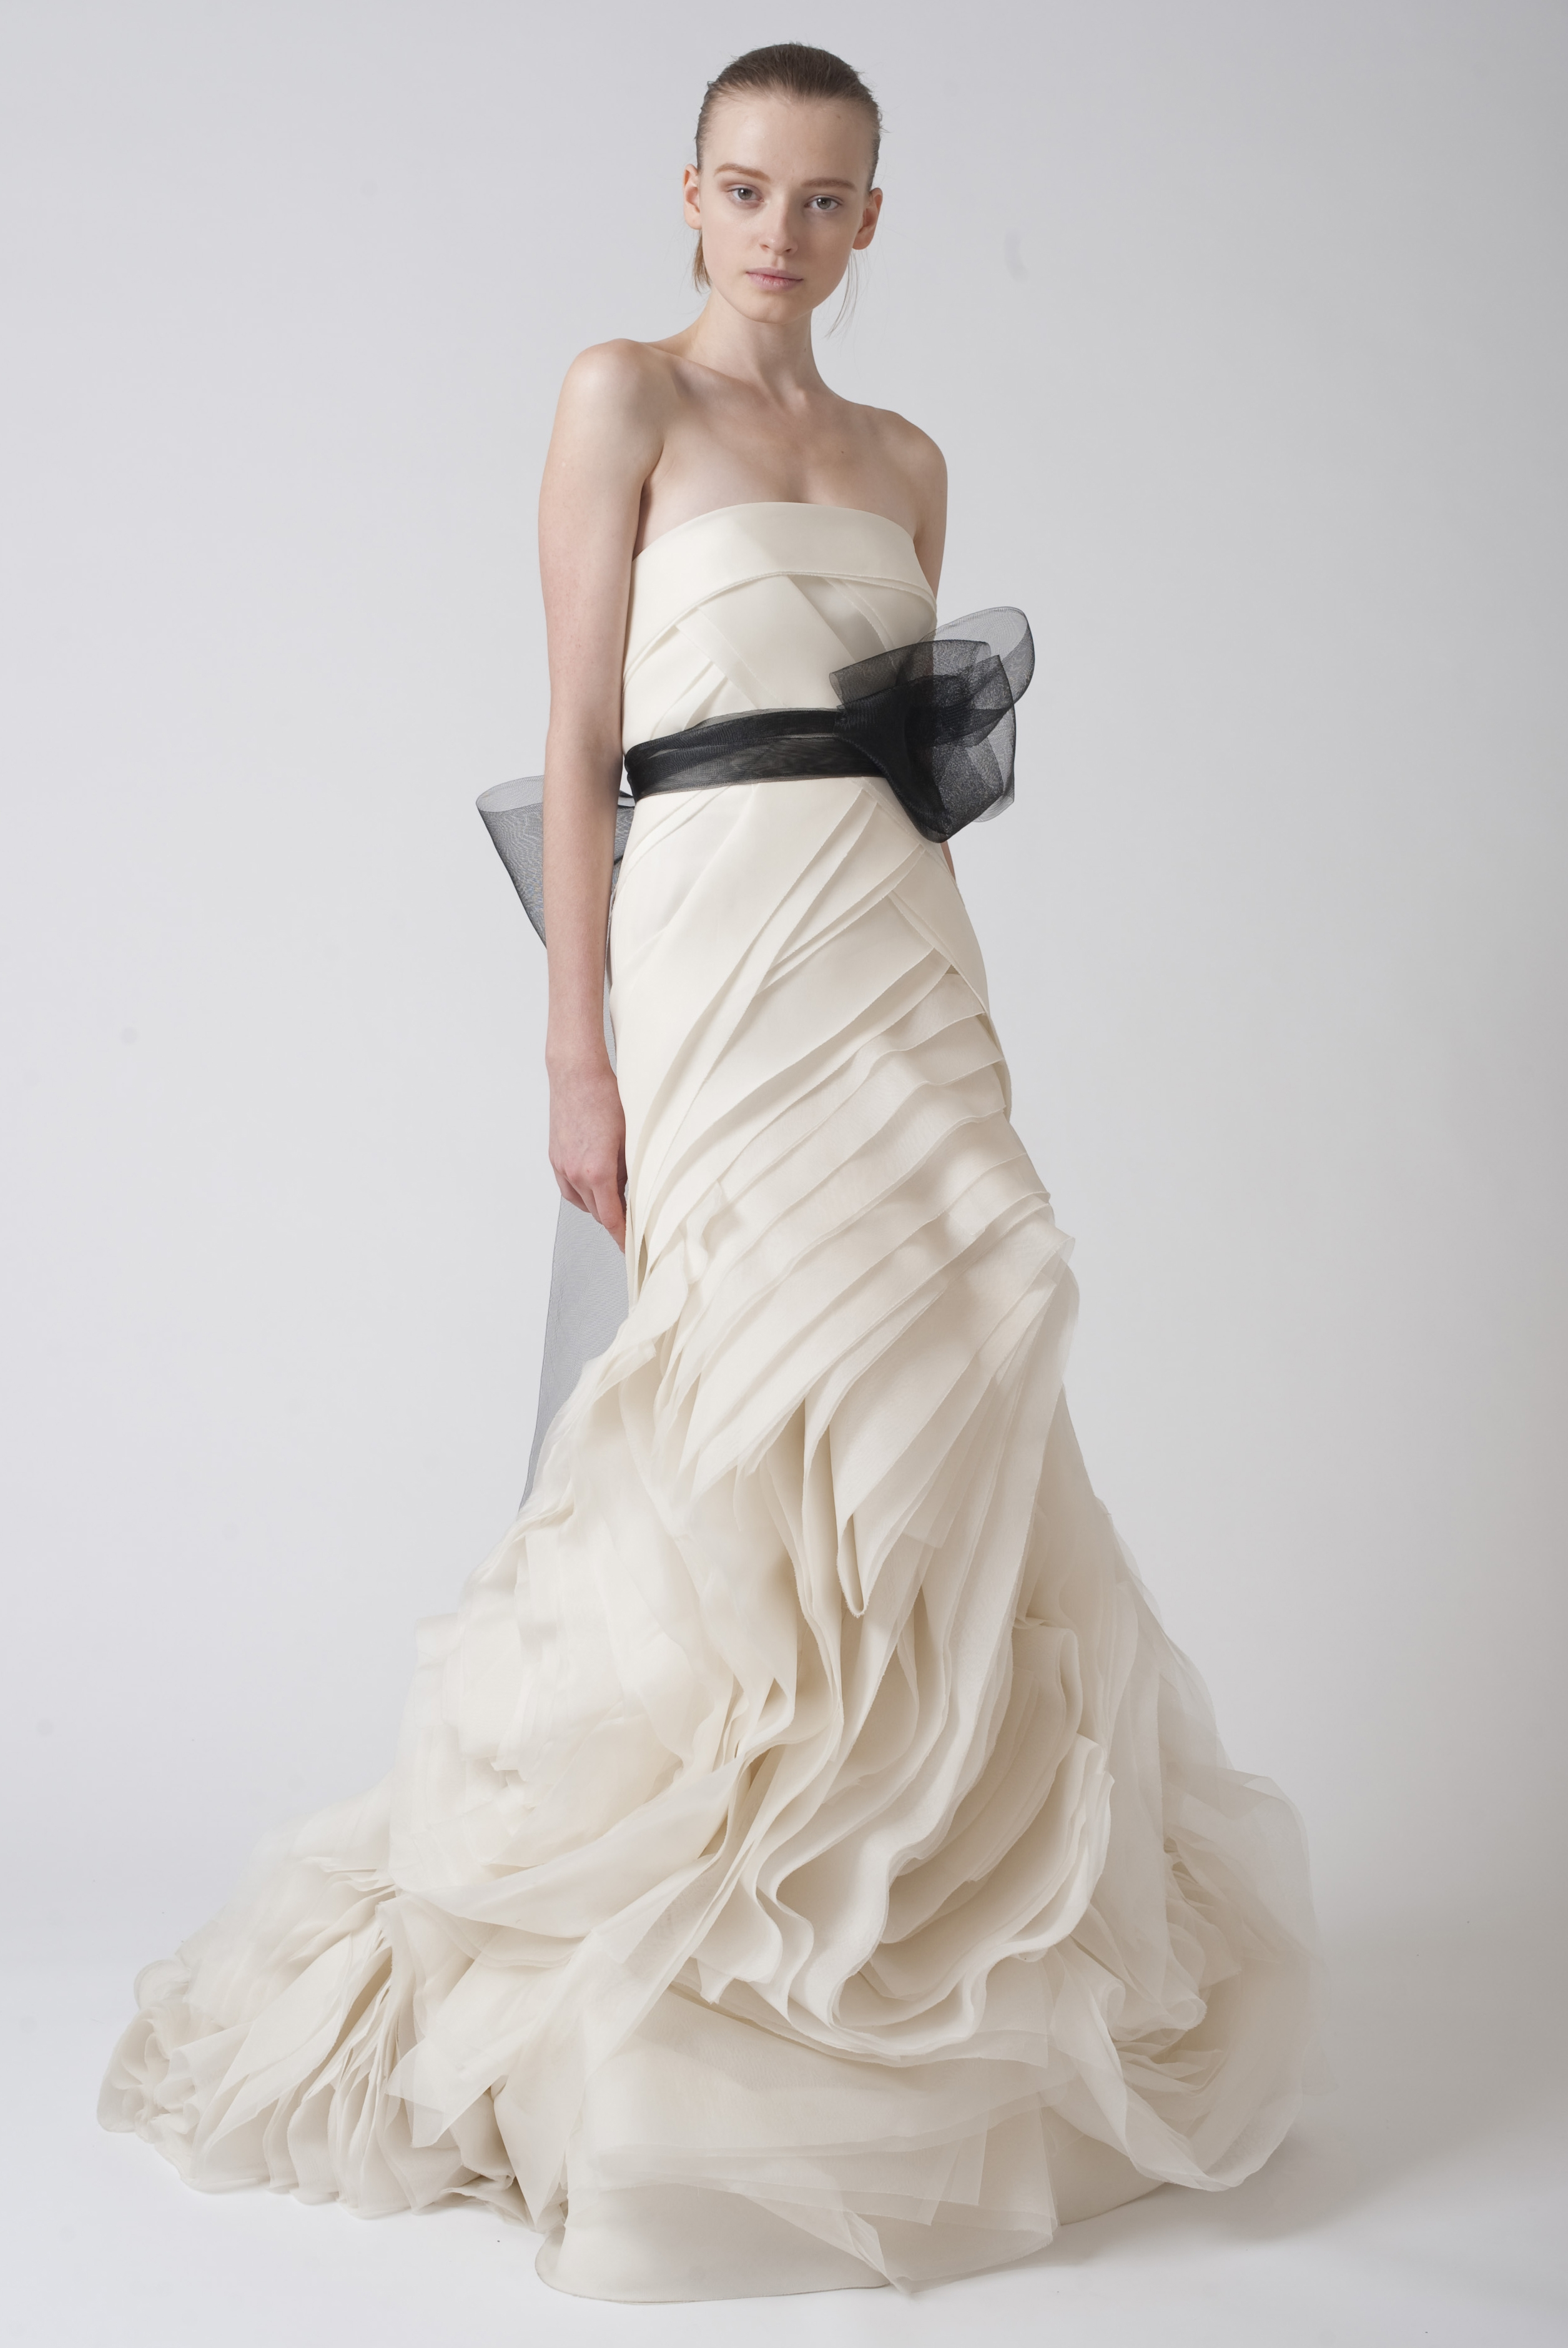 Mesmerizing Affordable Vera Wang Wedding Dresses Pictures Design ...